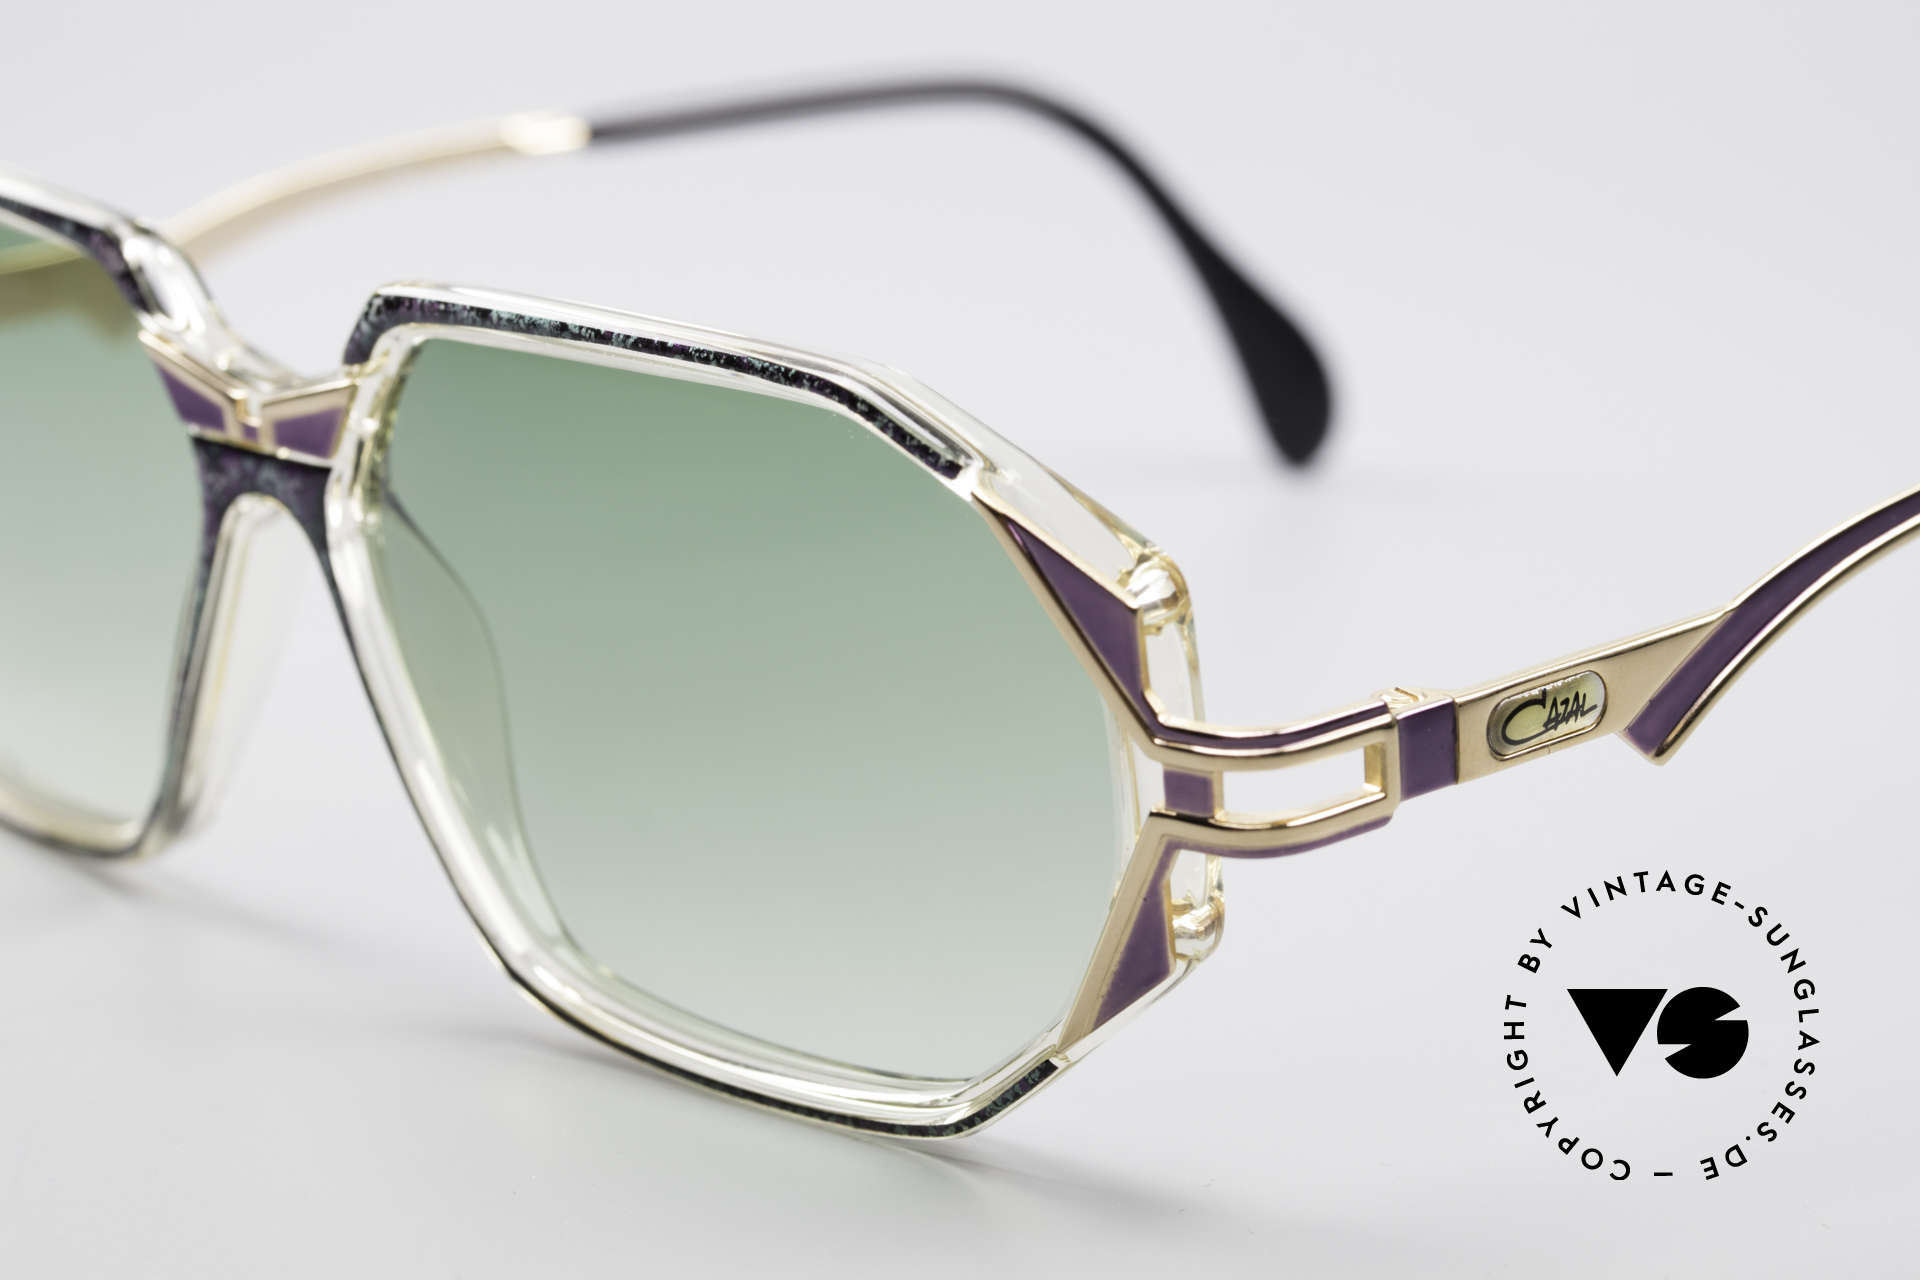 Cazal 361 Original Ladies 90s Sunglasses, top-notch crafting & great durability (made in Germany), Made for Women